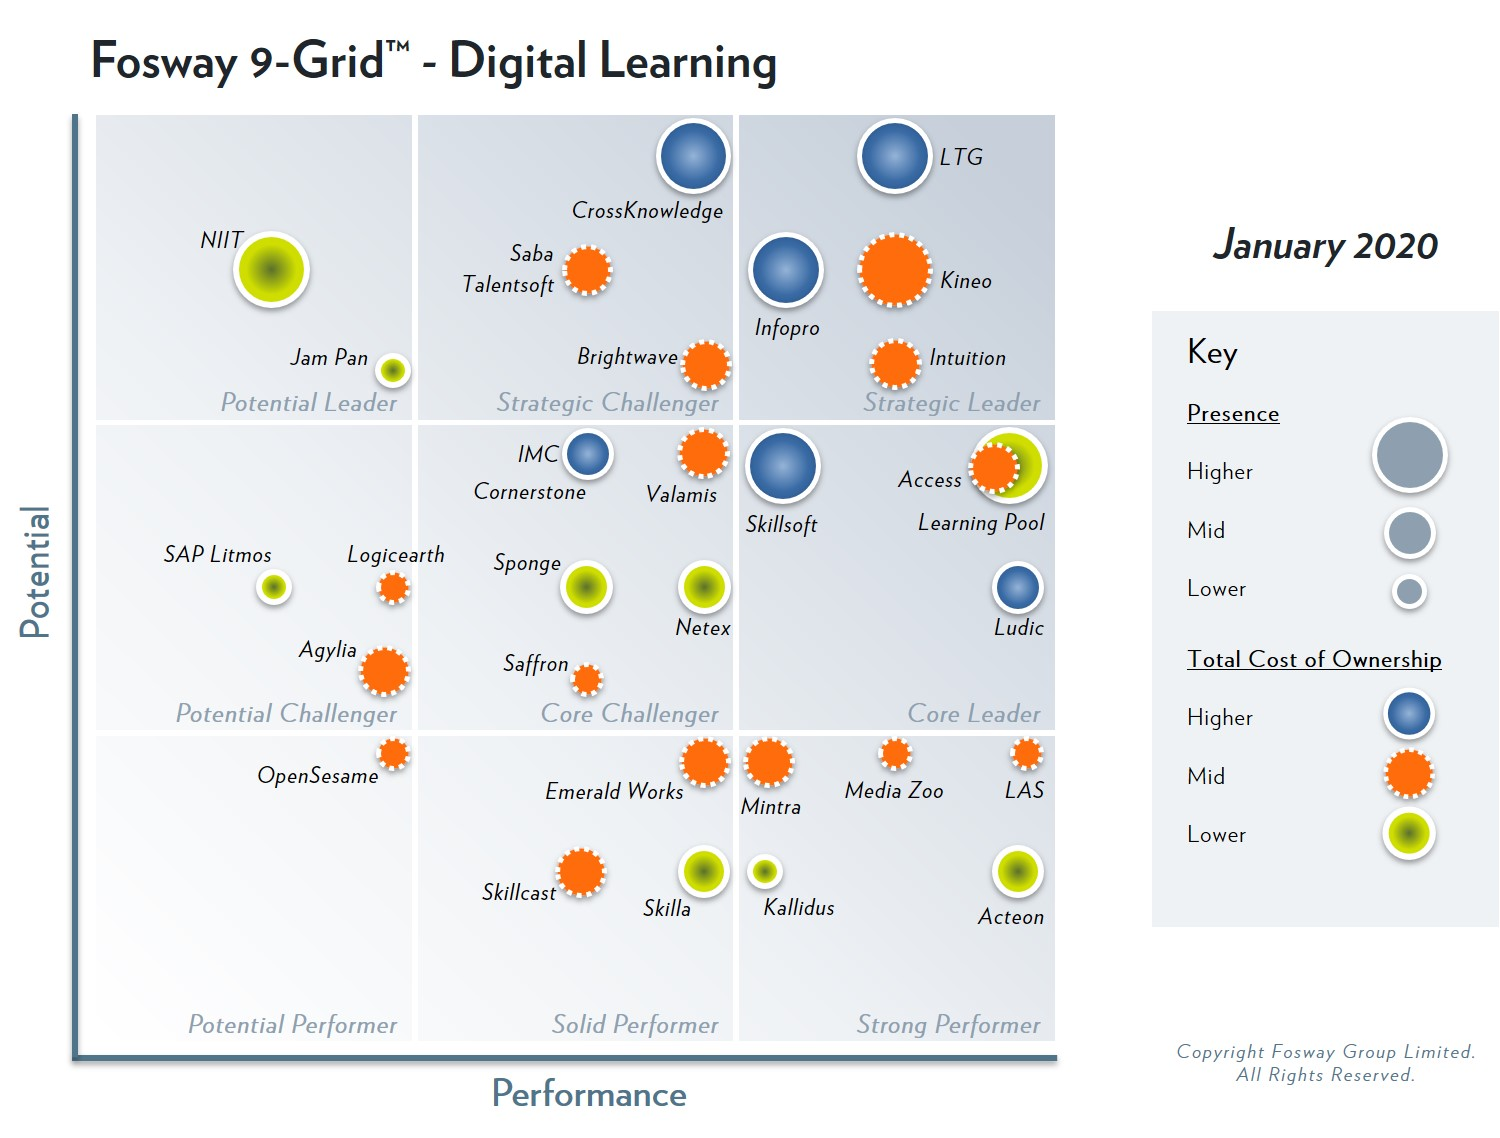 Learning Technologies Group has been identified as Strategic Leader in the 2020 Fosway 9-Grid™ for Digital Learning